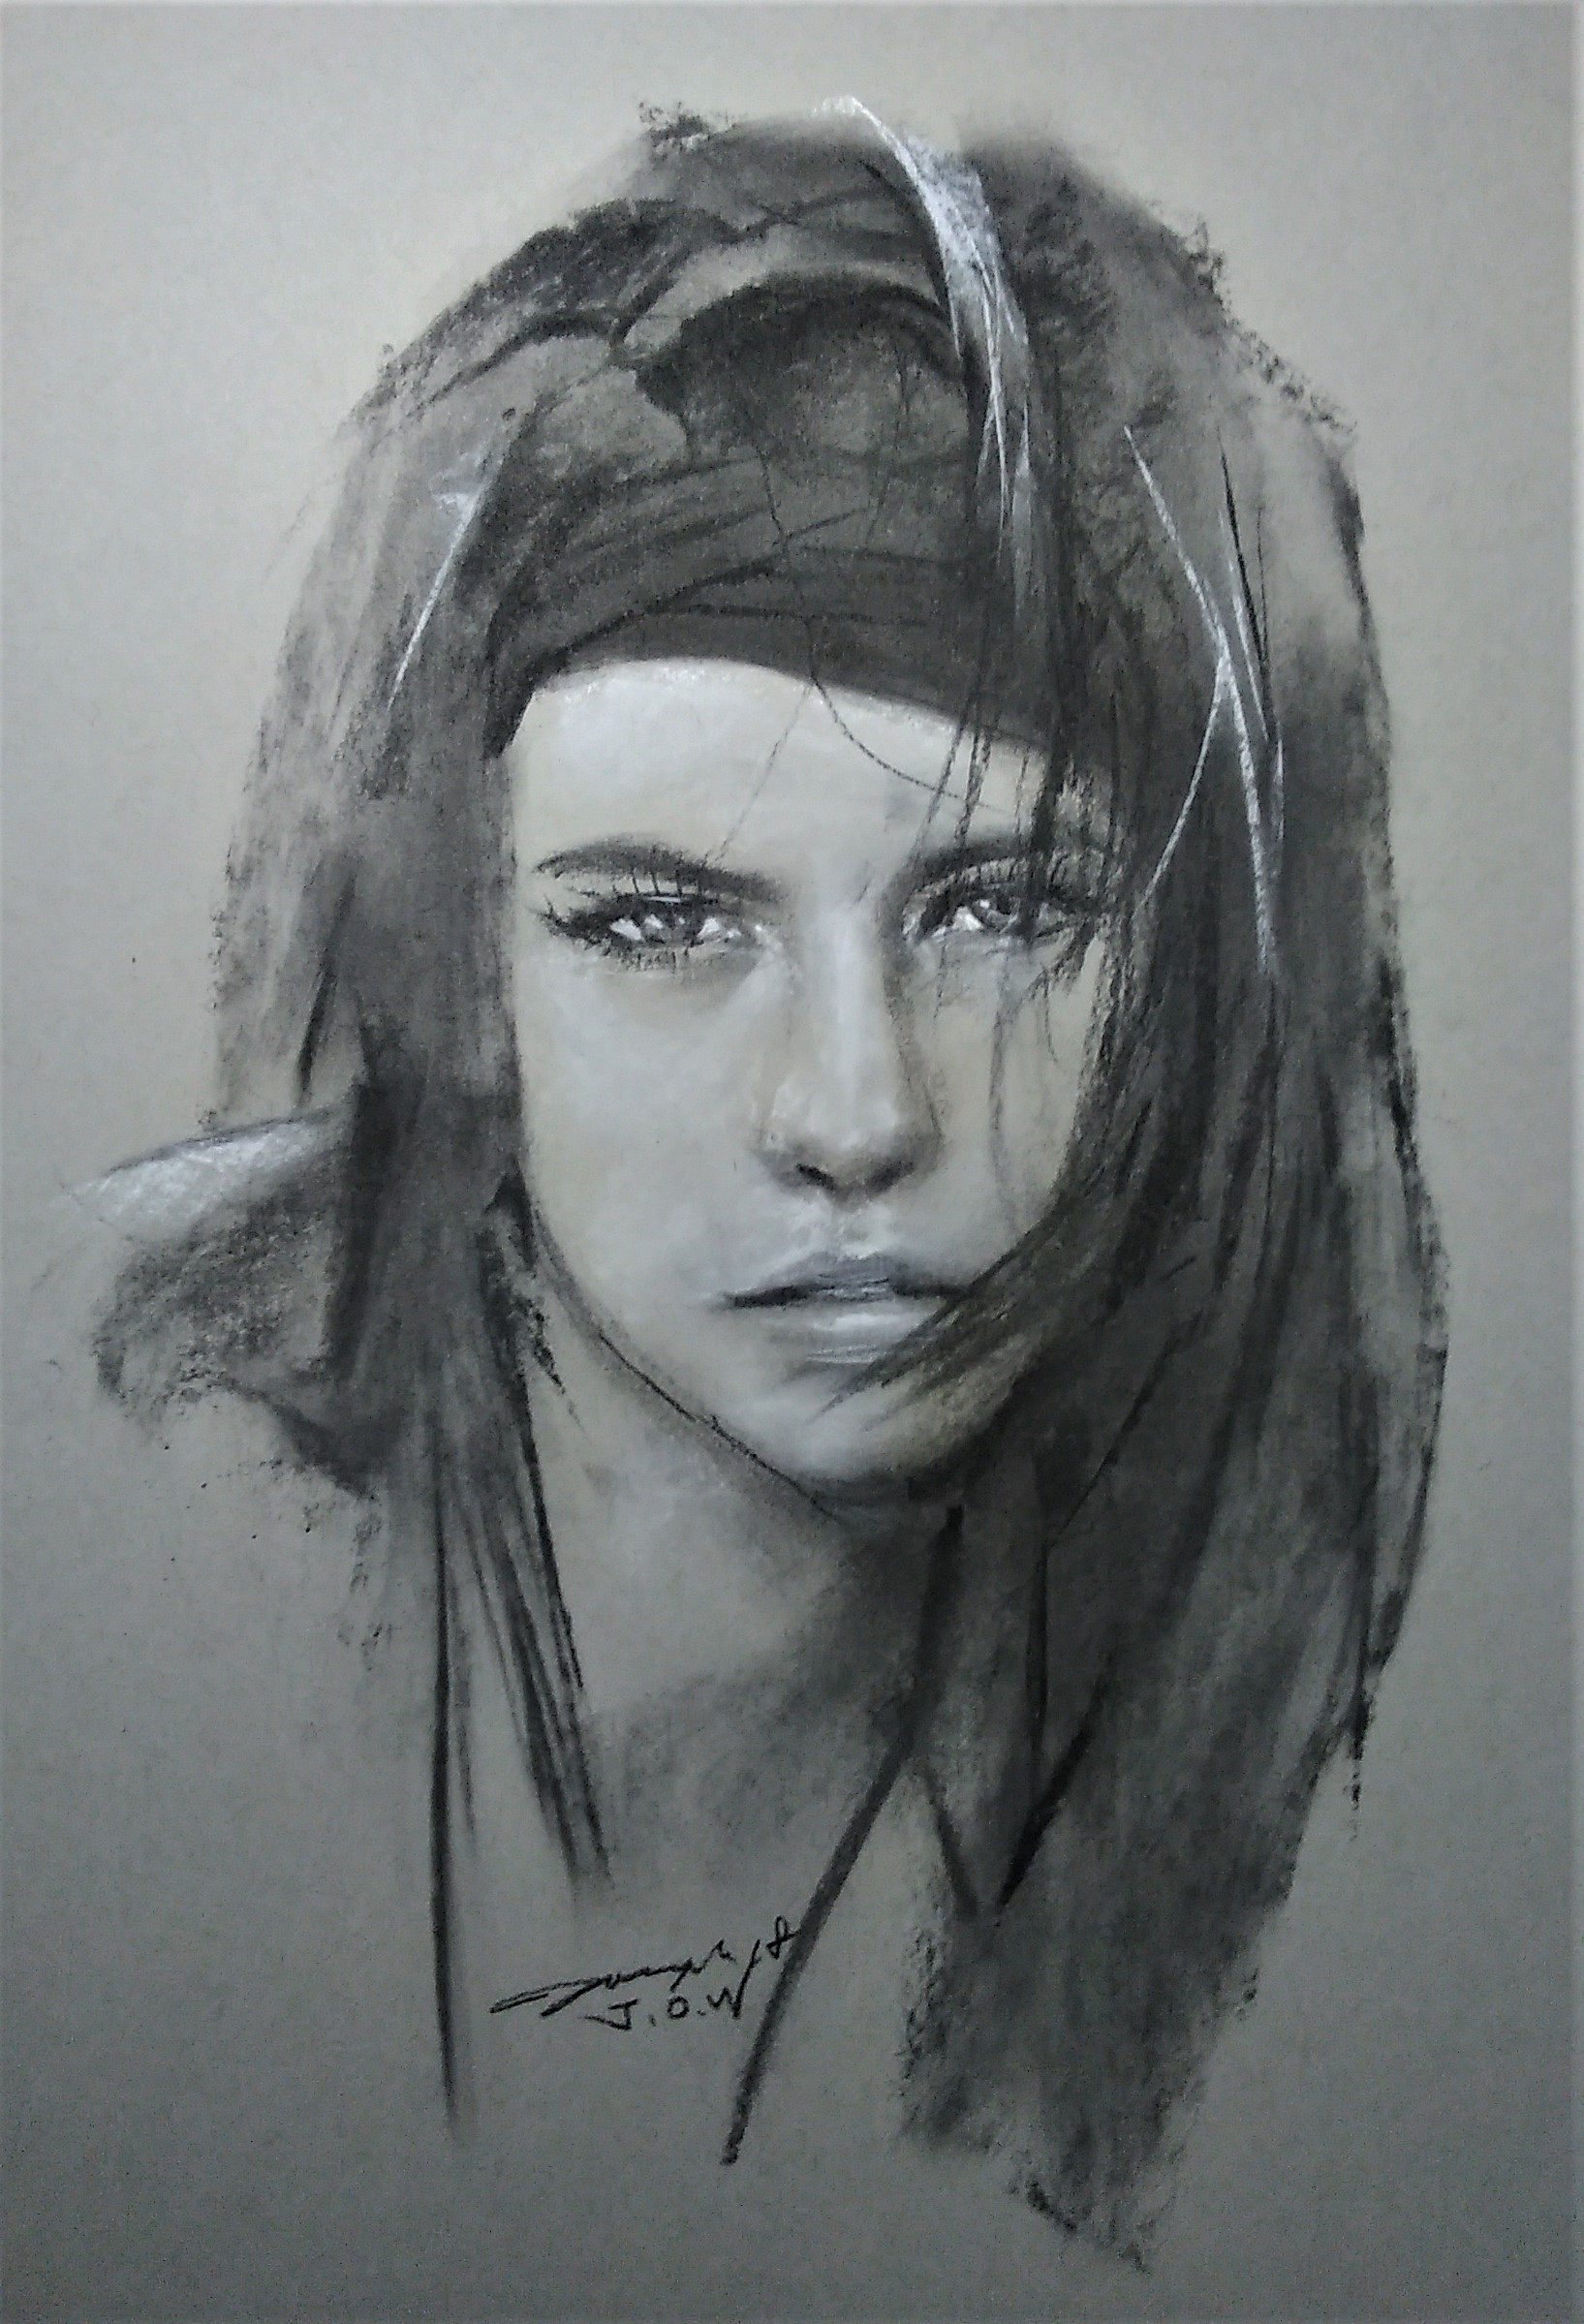 Charcoal on paper 16 x 20